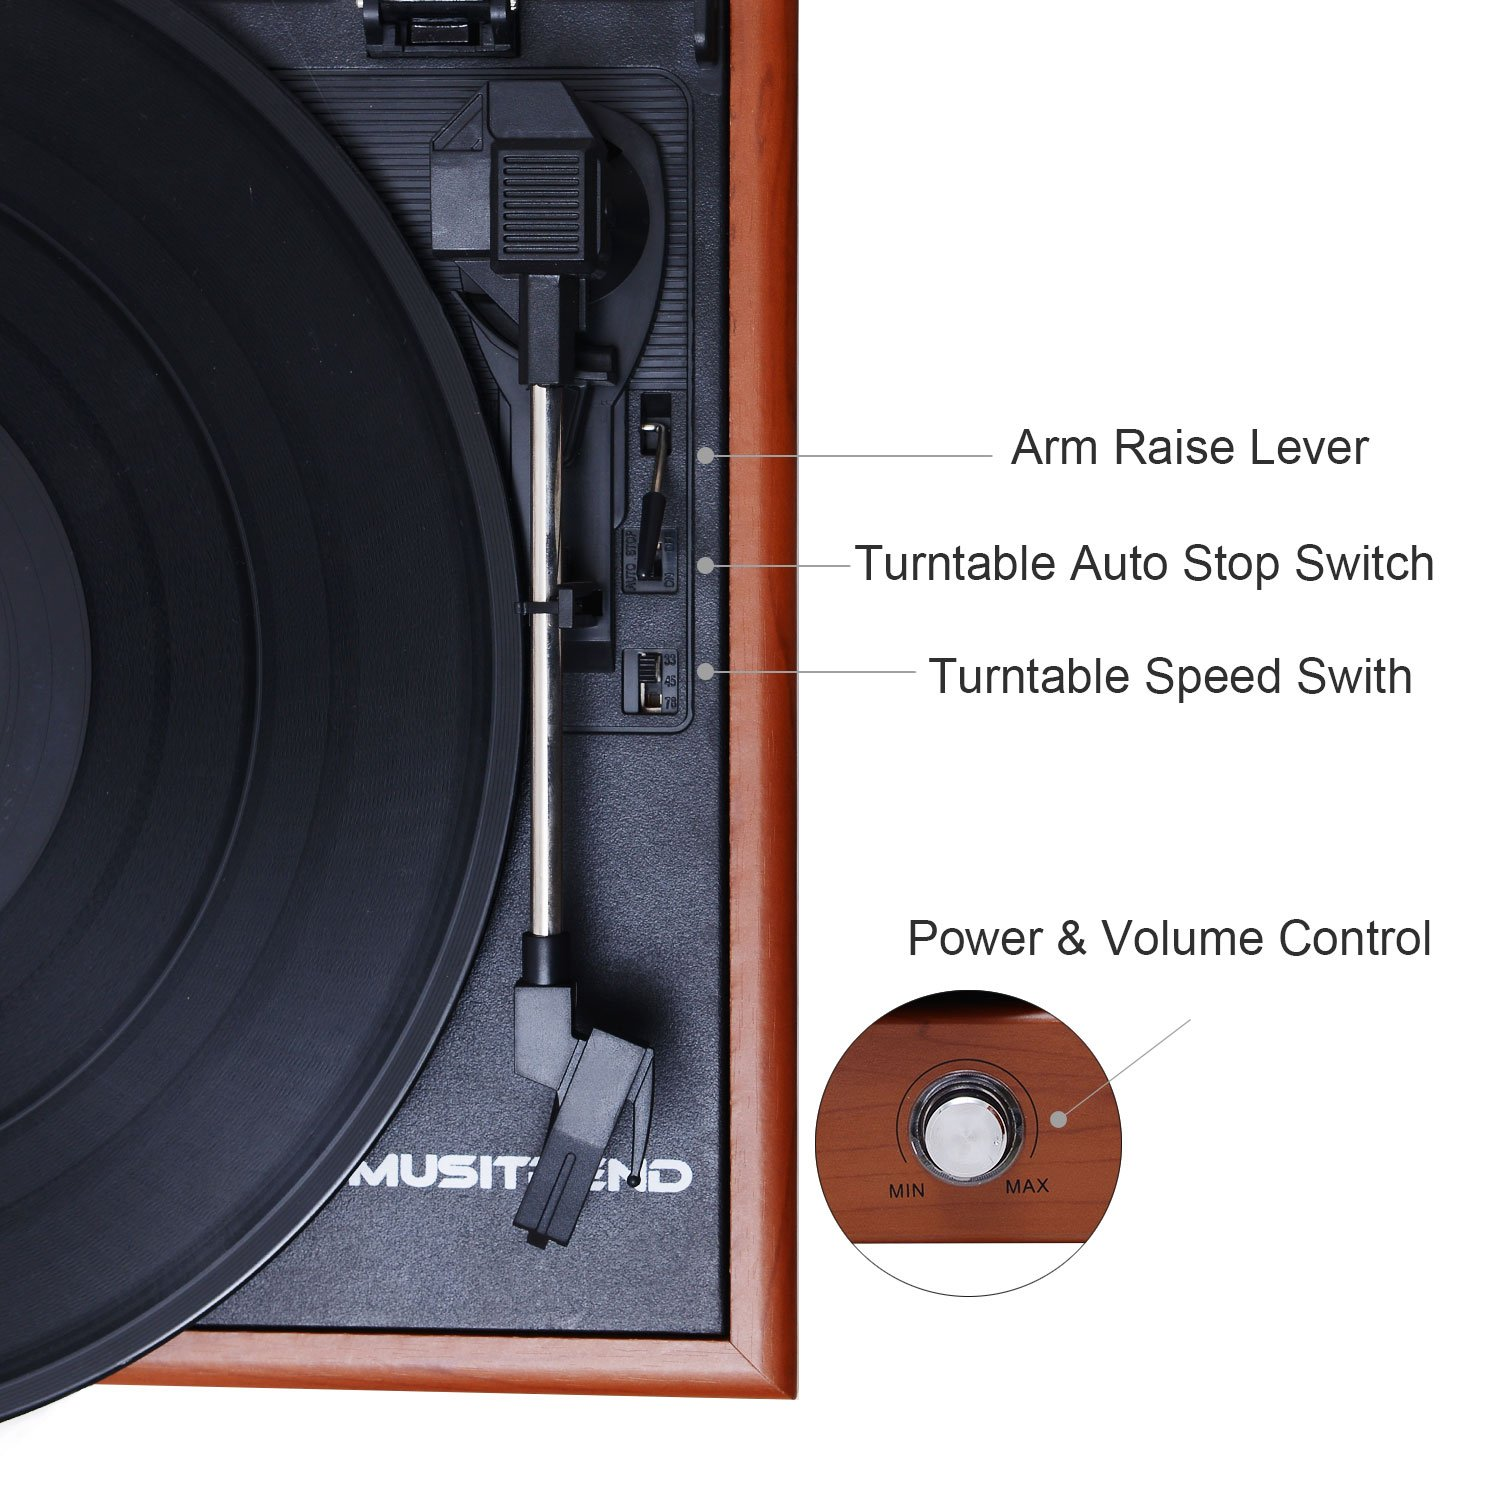 Musitrend Vinyl Record Player 3 Speed Portable Turntable Suitcase Record Player Built in Speakers RCA Line Out AUX Headphone Jack PC Recorder,Wood